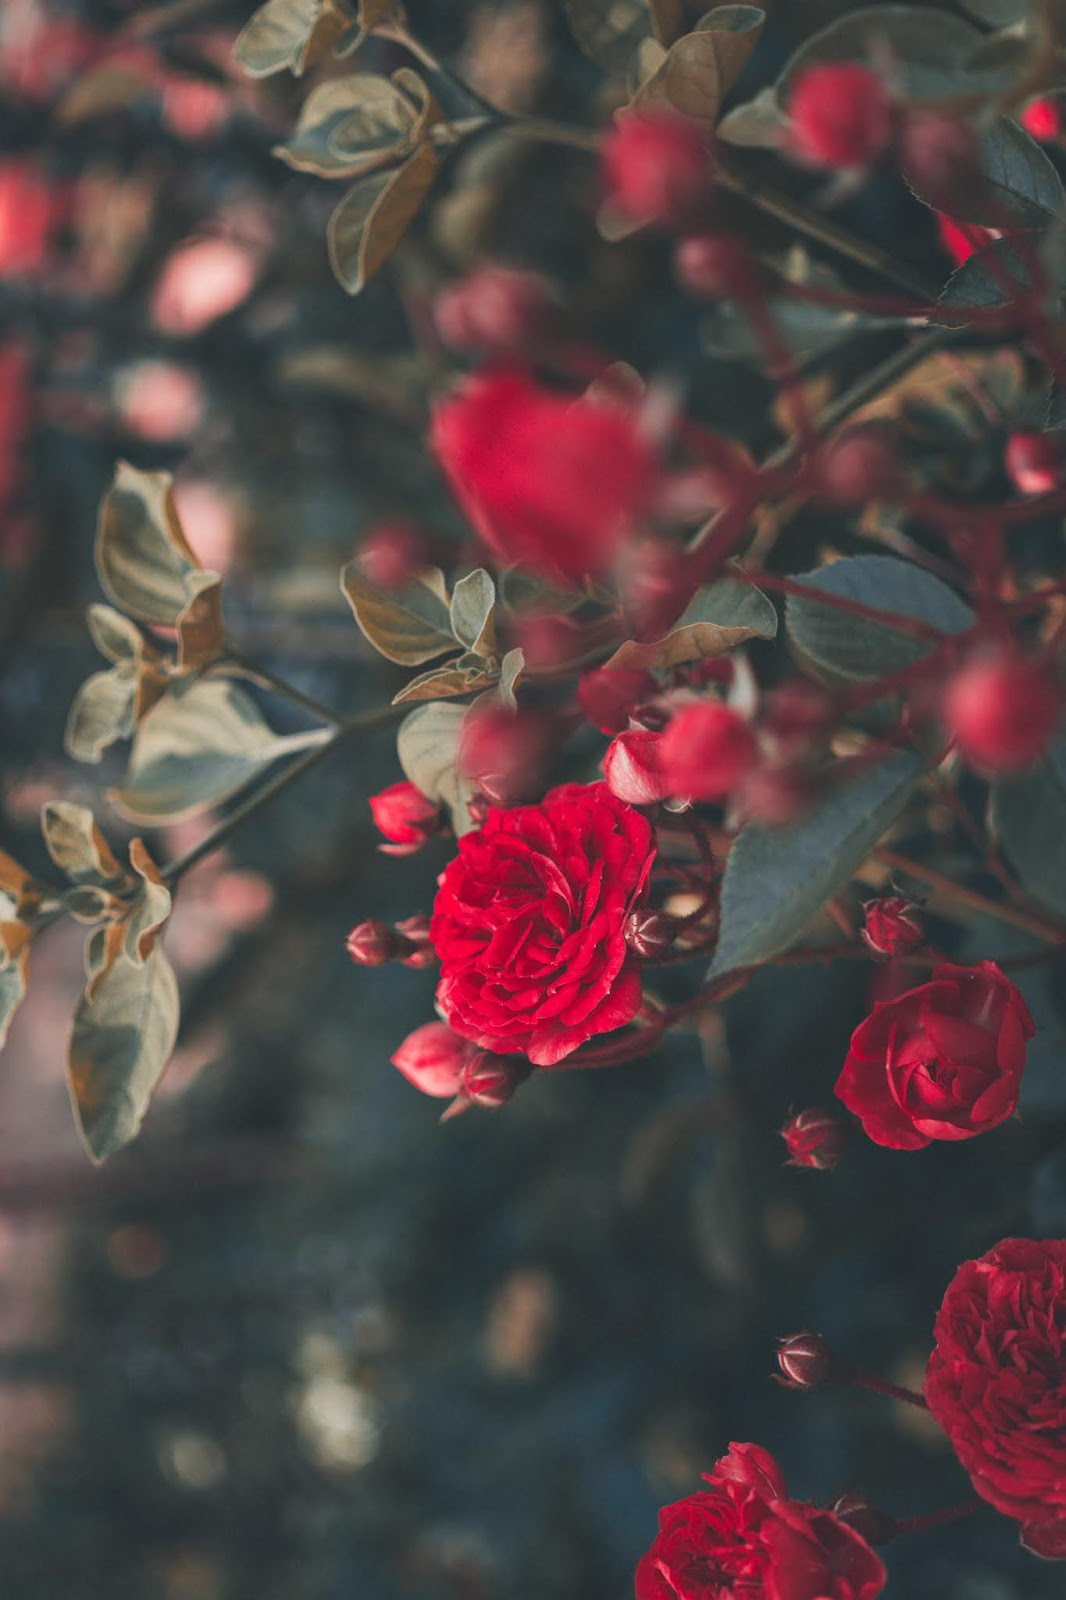 blooming red roses, rose images